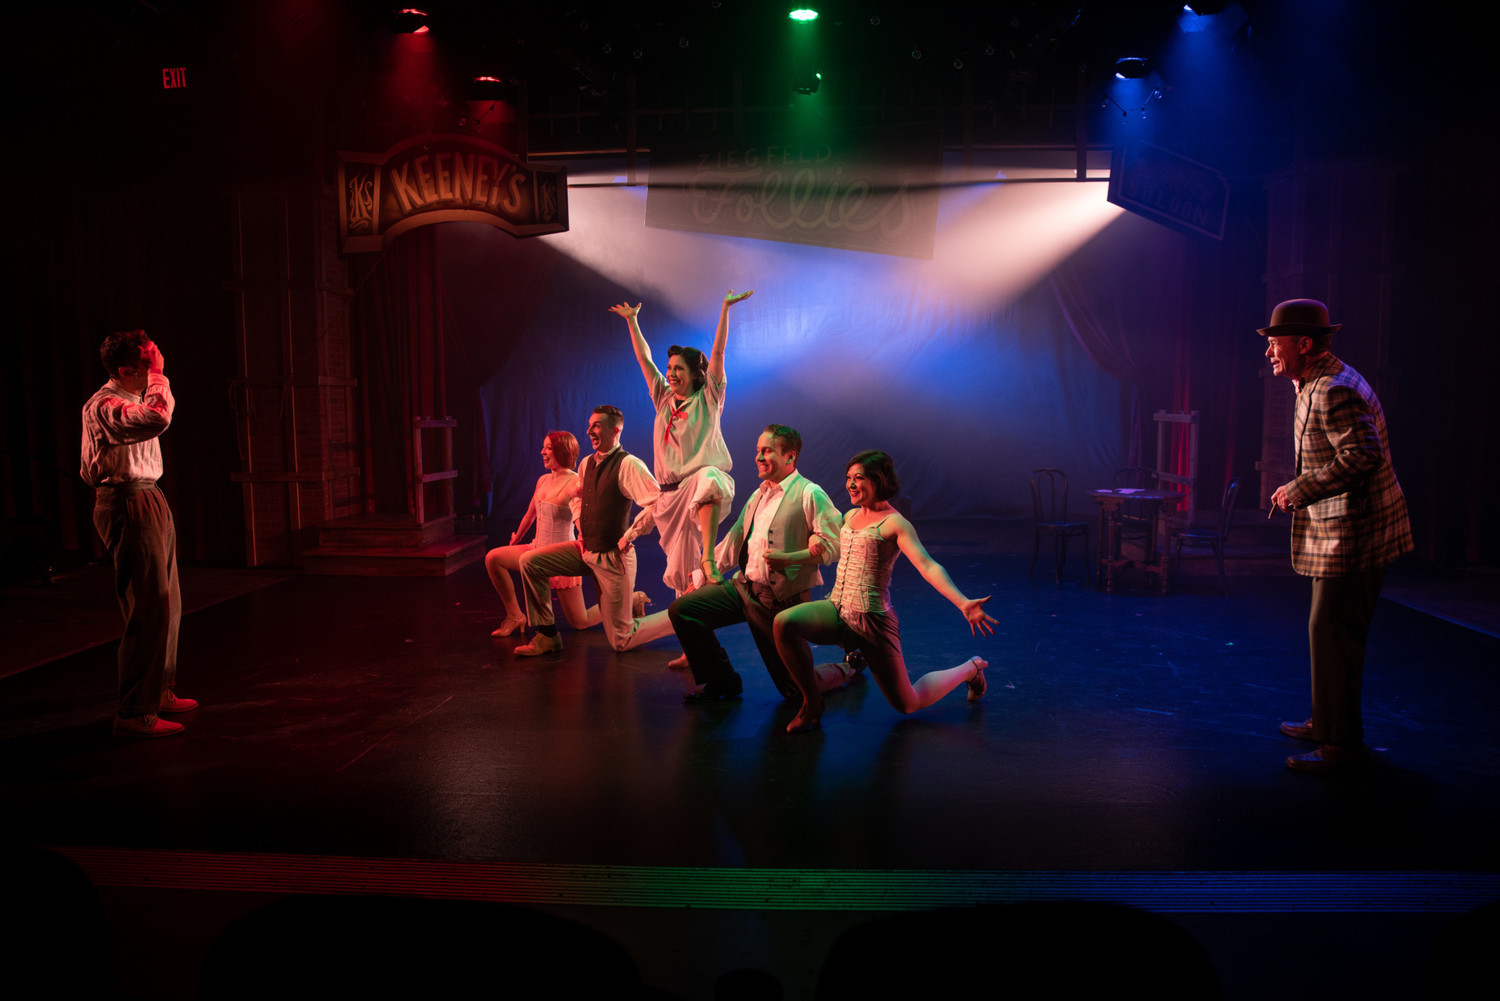 BWW Review: Another Fantastic Musical Theater Heritage Production - FUNNY GIRL at Crown Center